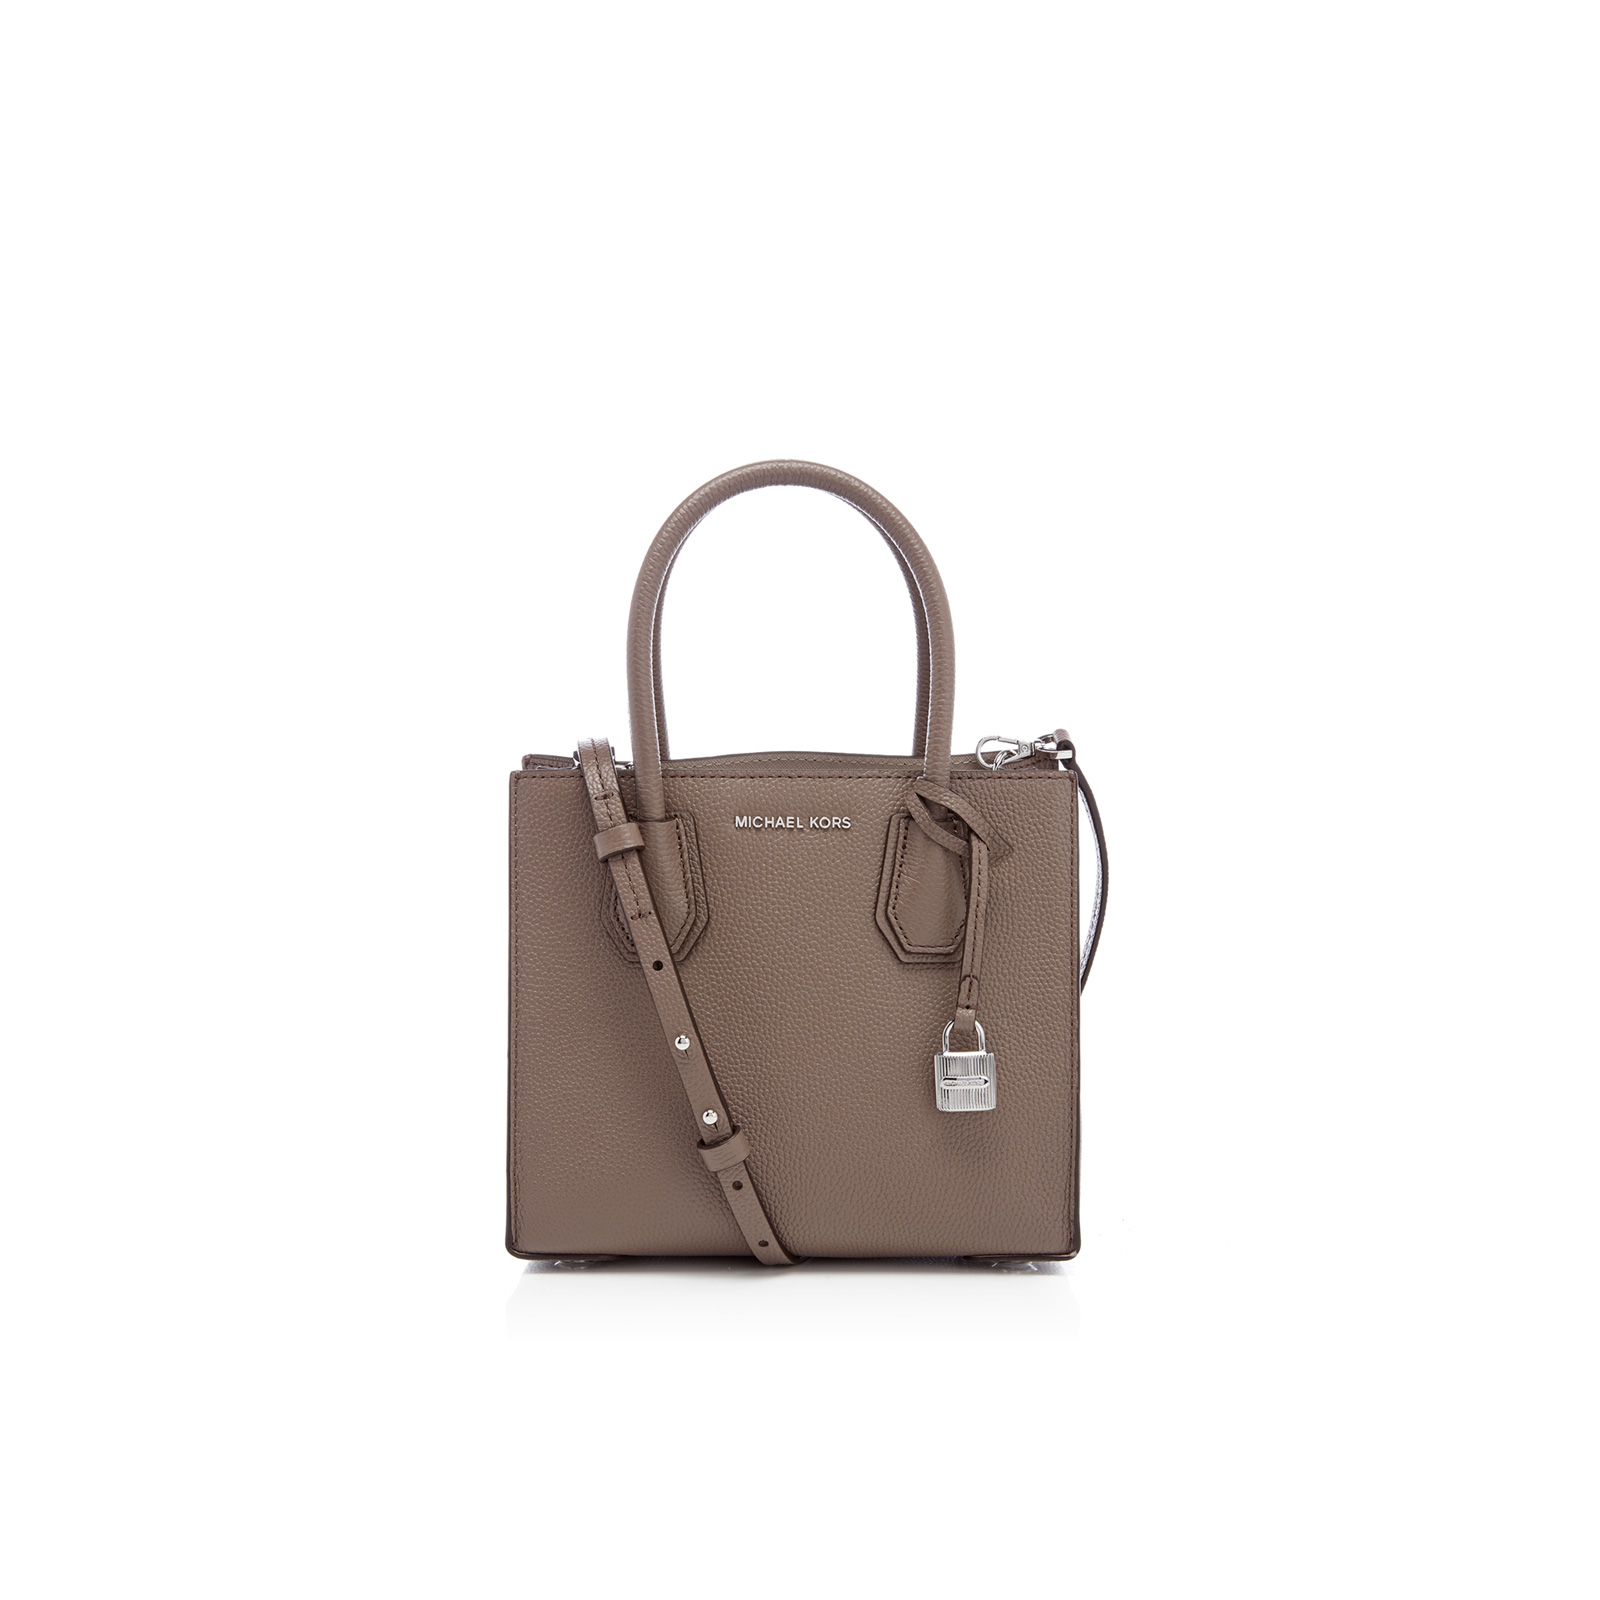 34bc0446601a MICHAEL MICHAEL KORS Women's Mercer Mid Messenger Tote Bag - Cinder - Free  UK Delivery over £50